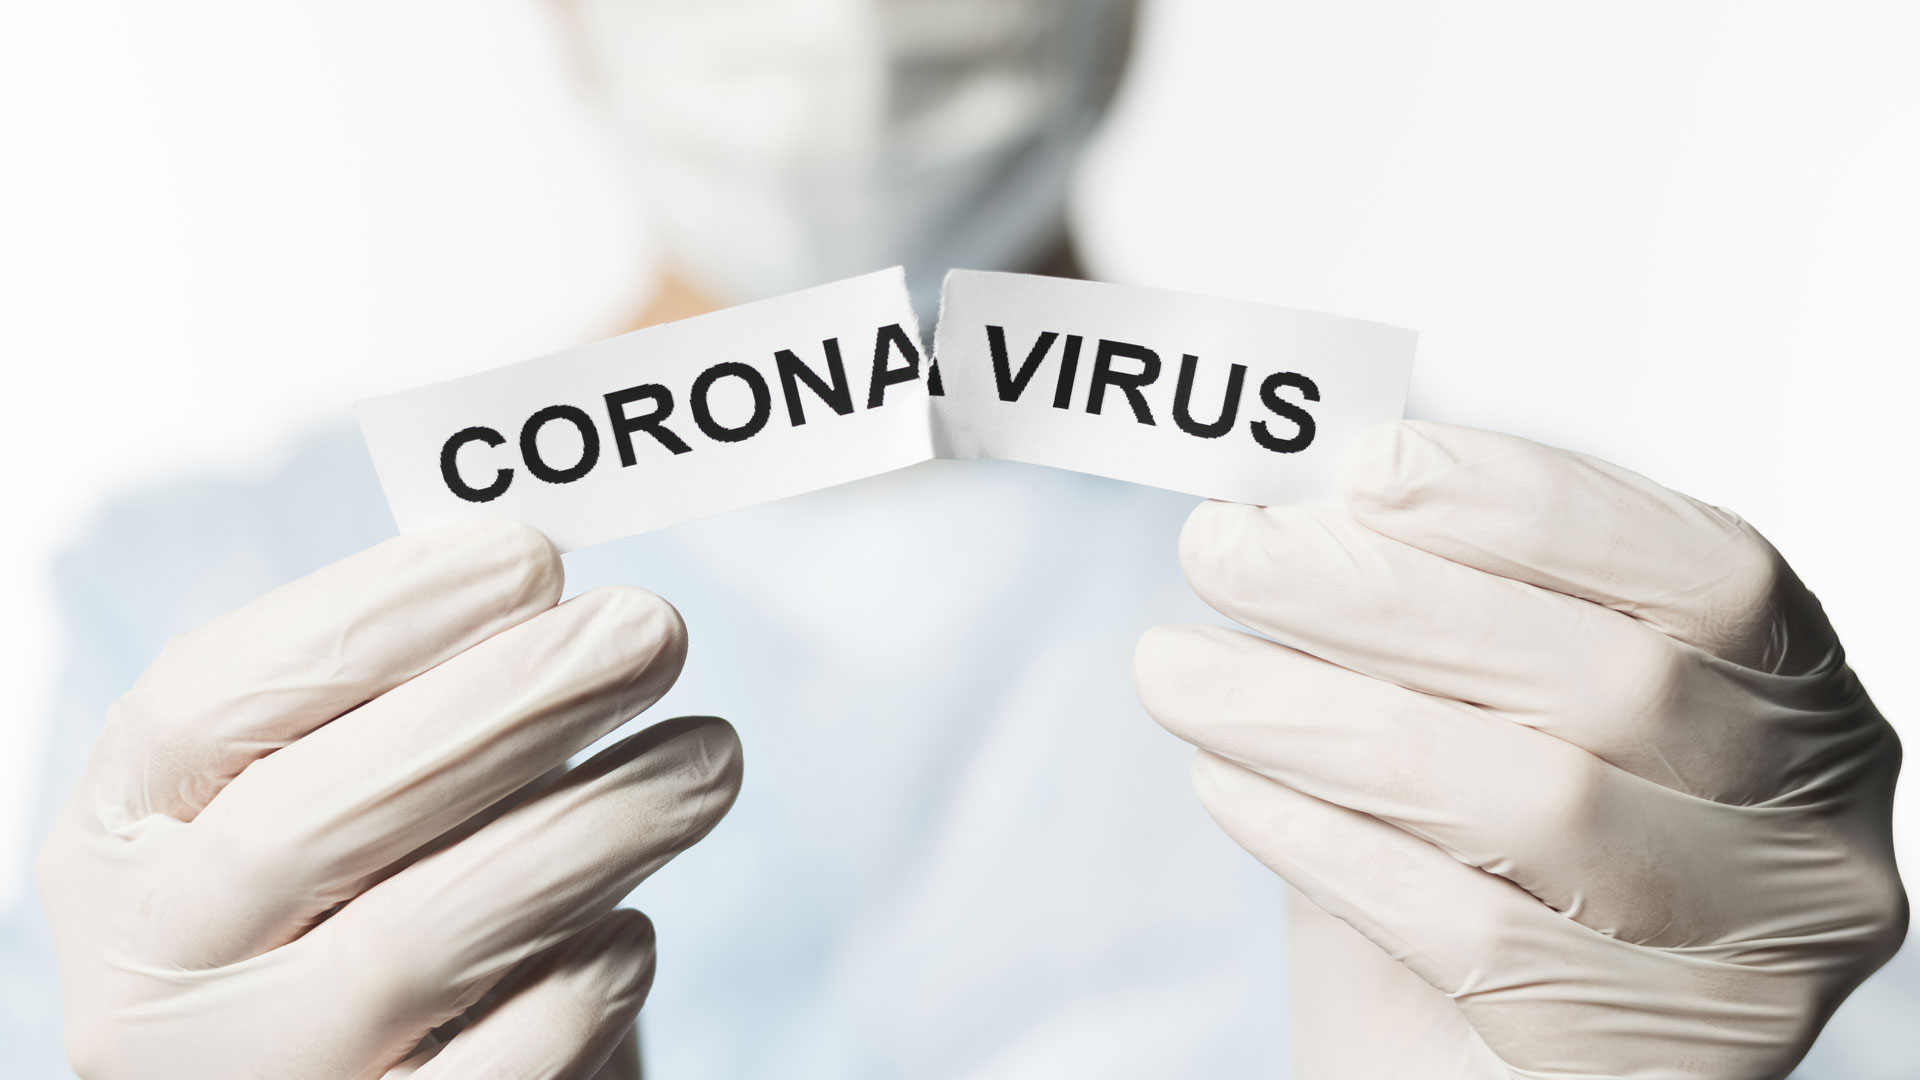 Coronavirus: What is it?